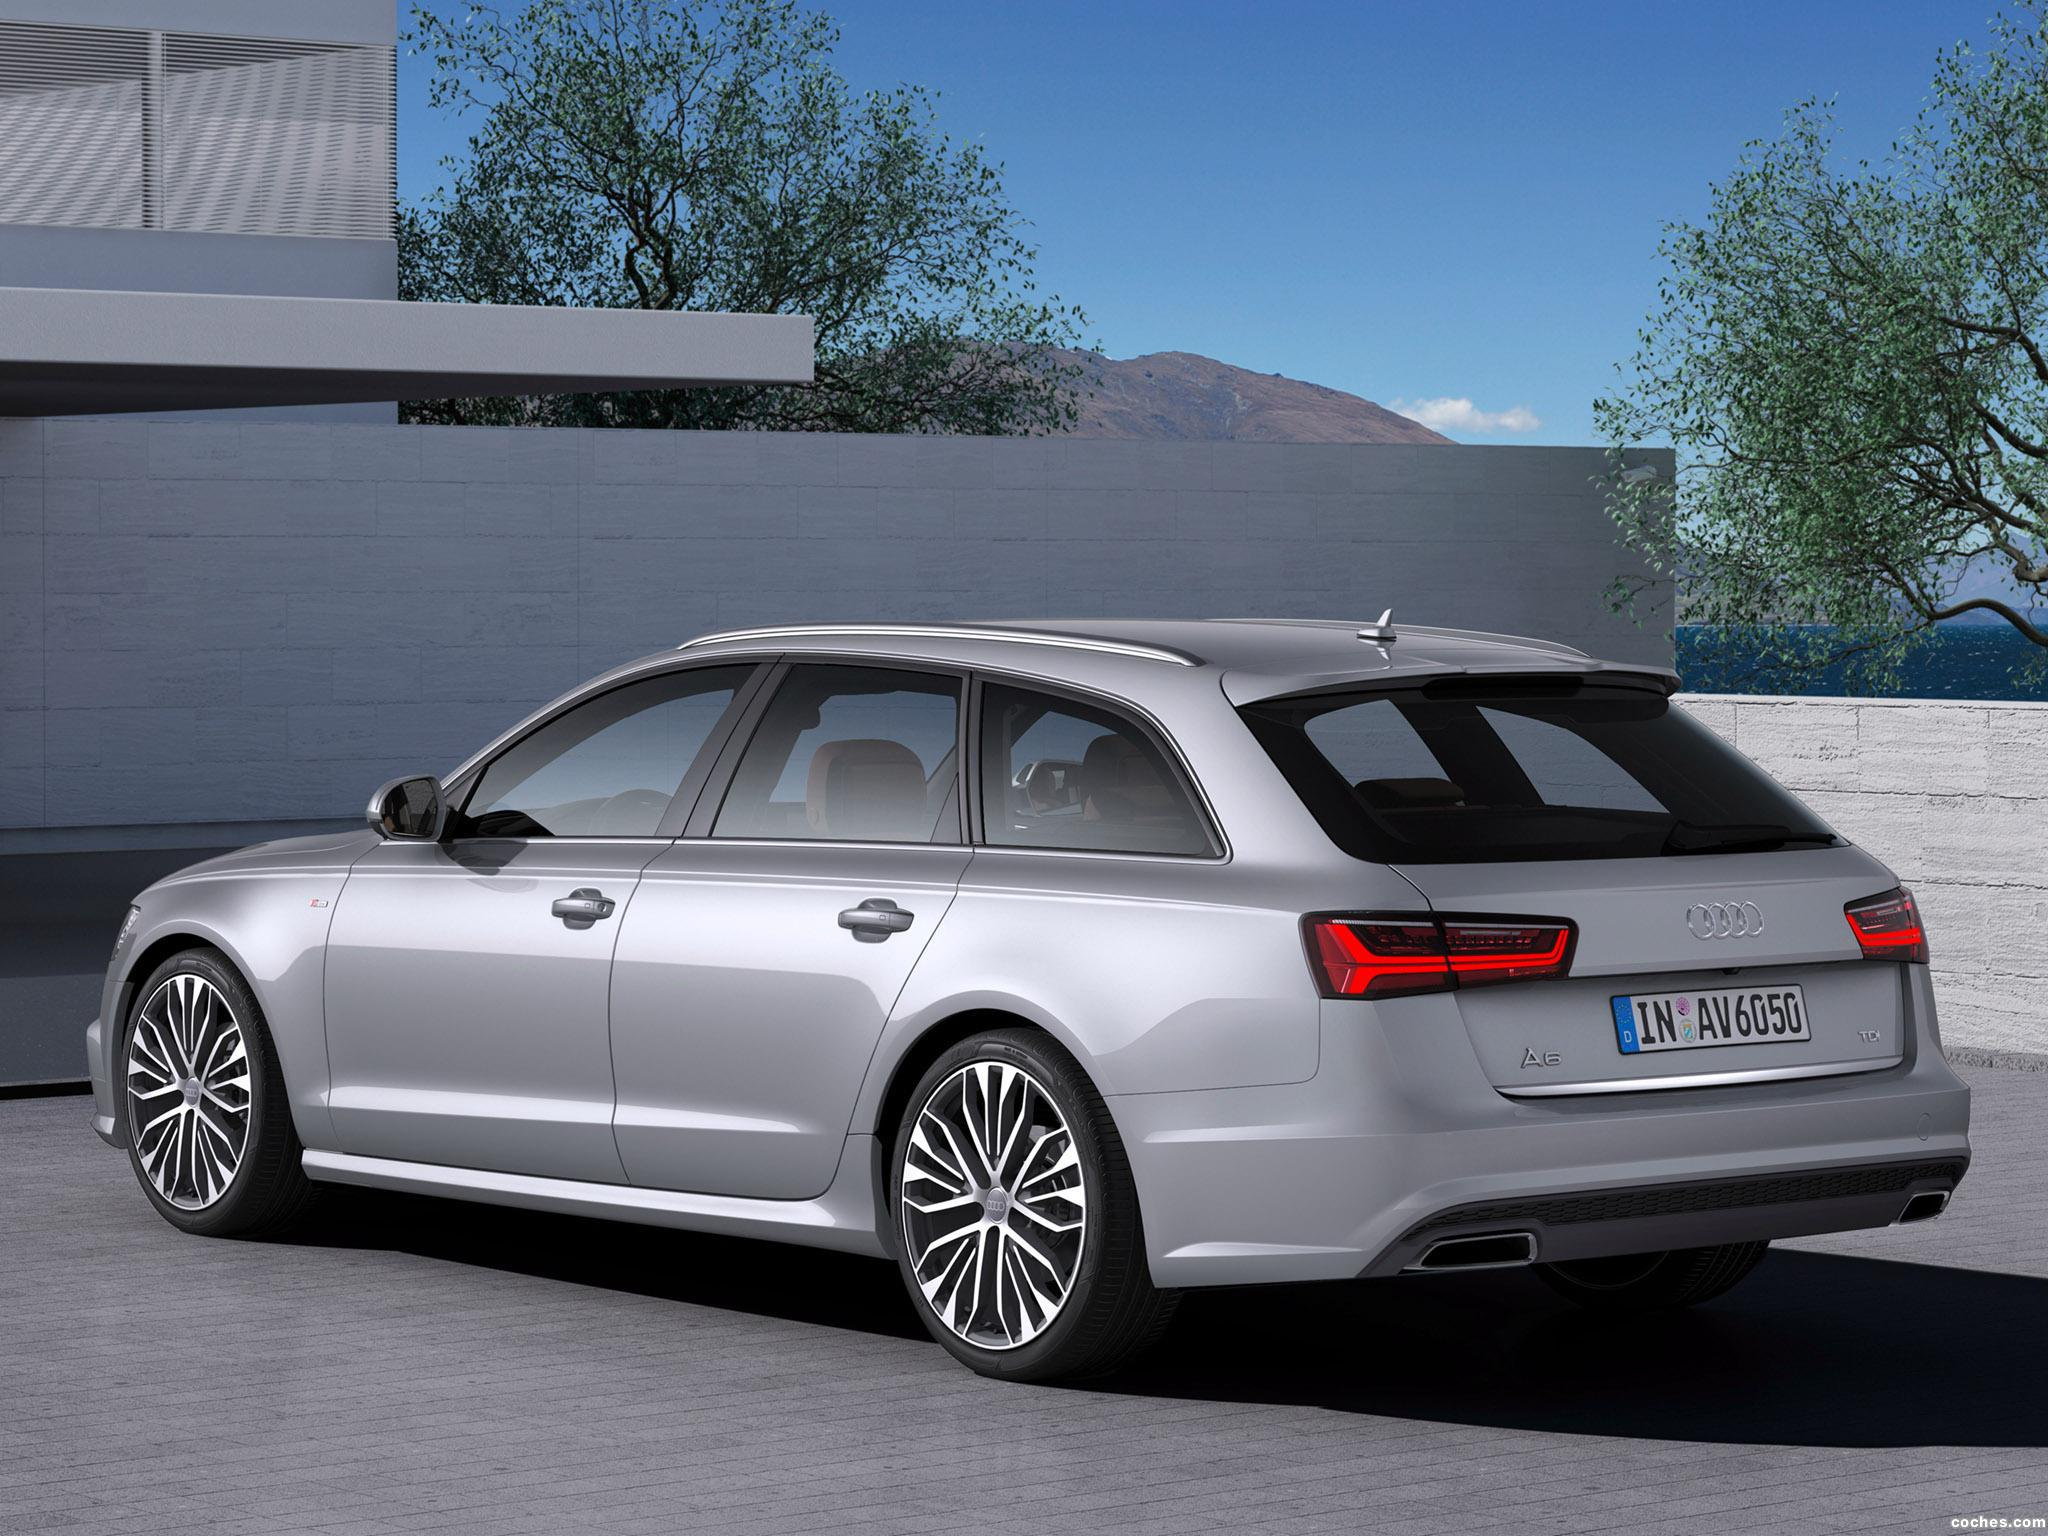 fotos de audi a6 avant 2 0 tdi s line 2015 foto 1. Black Bedroom Furniture Sets. Home Design Ideas